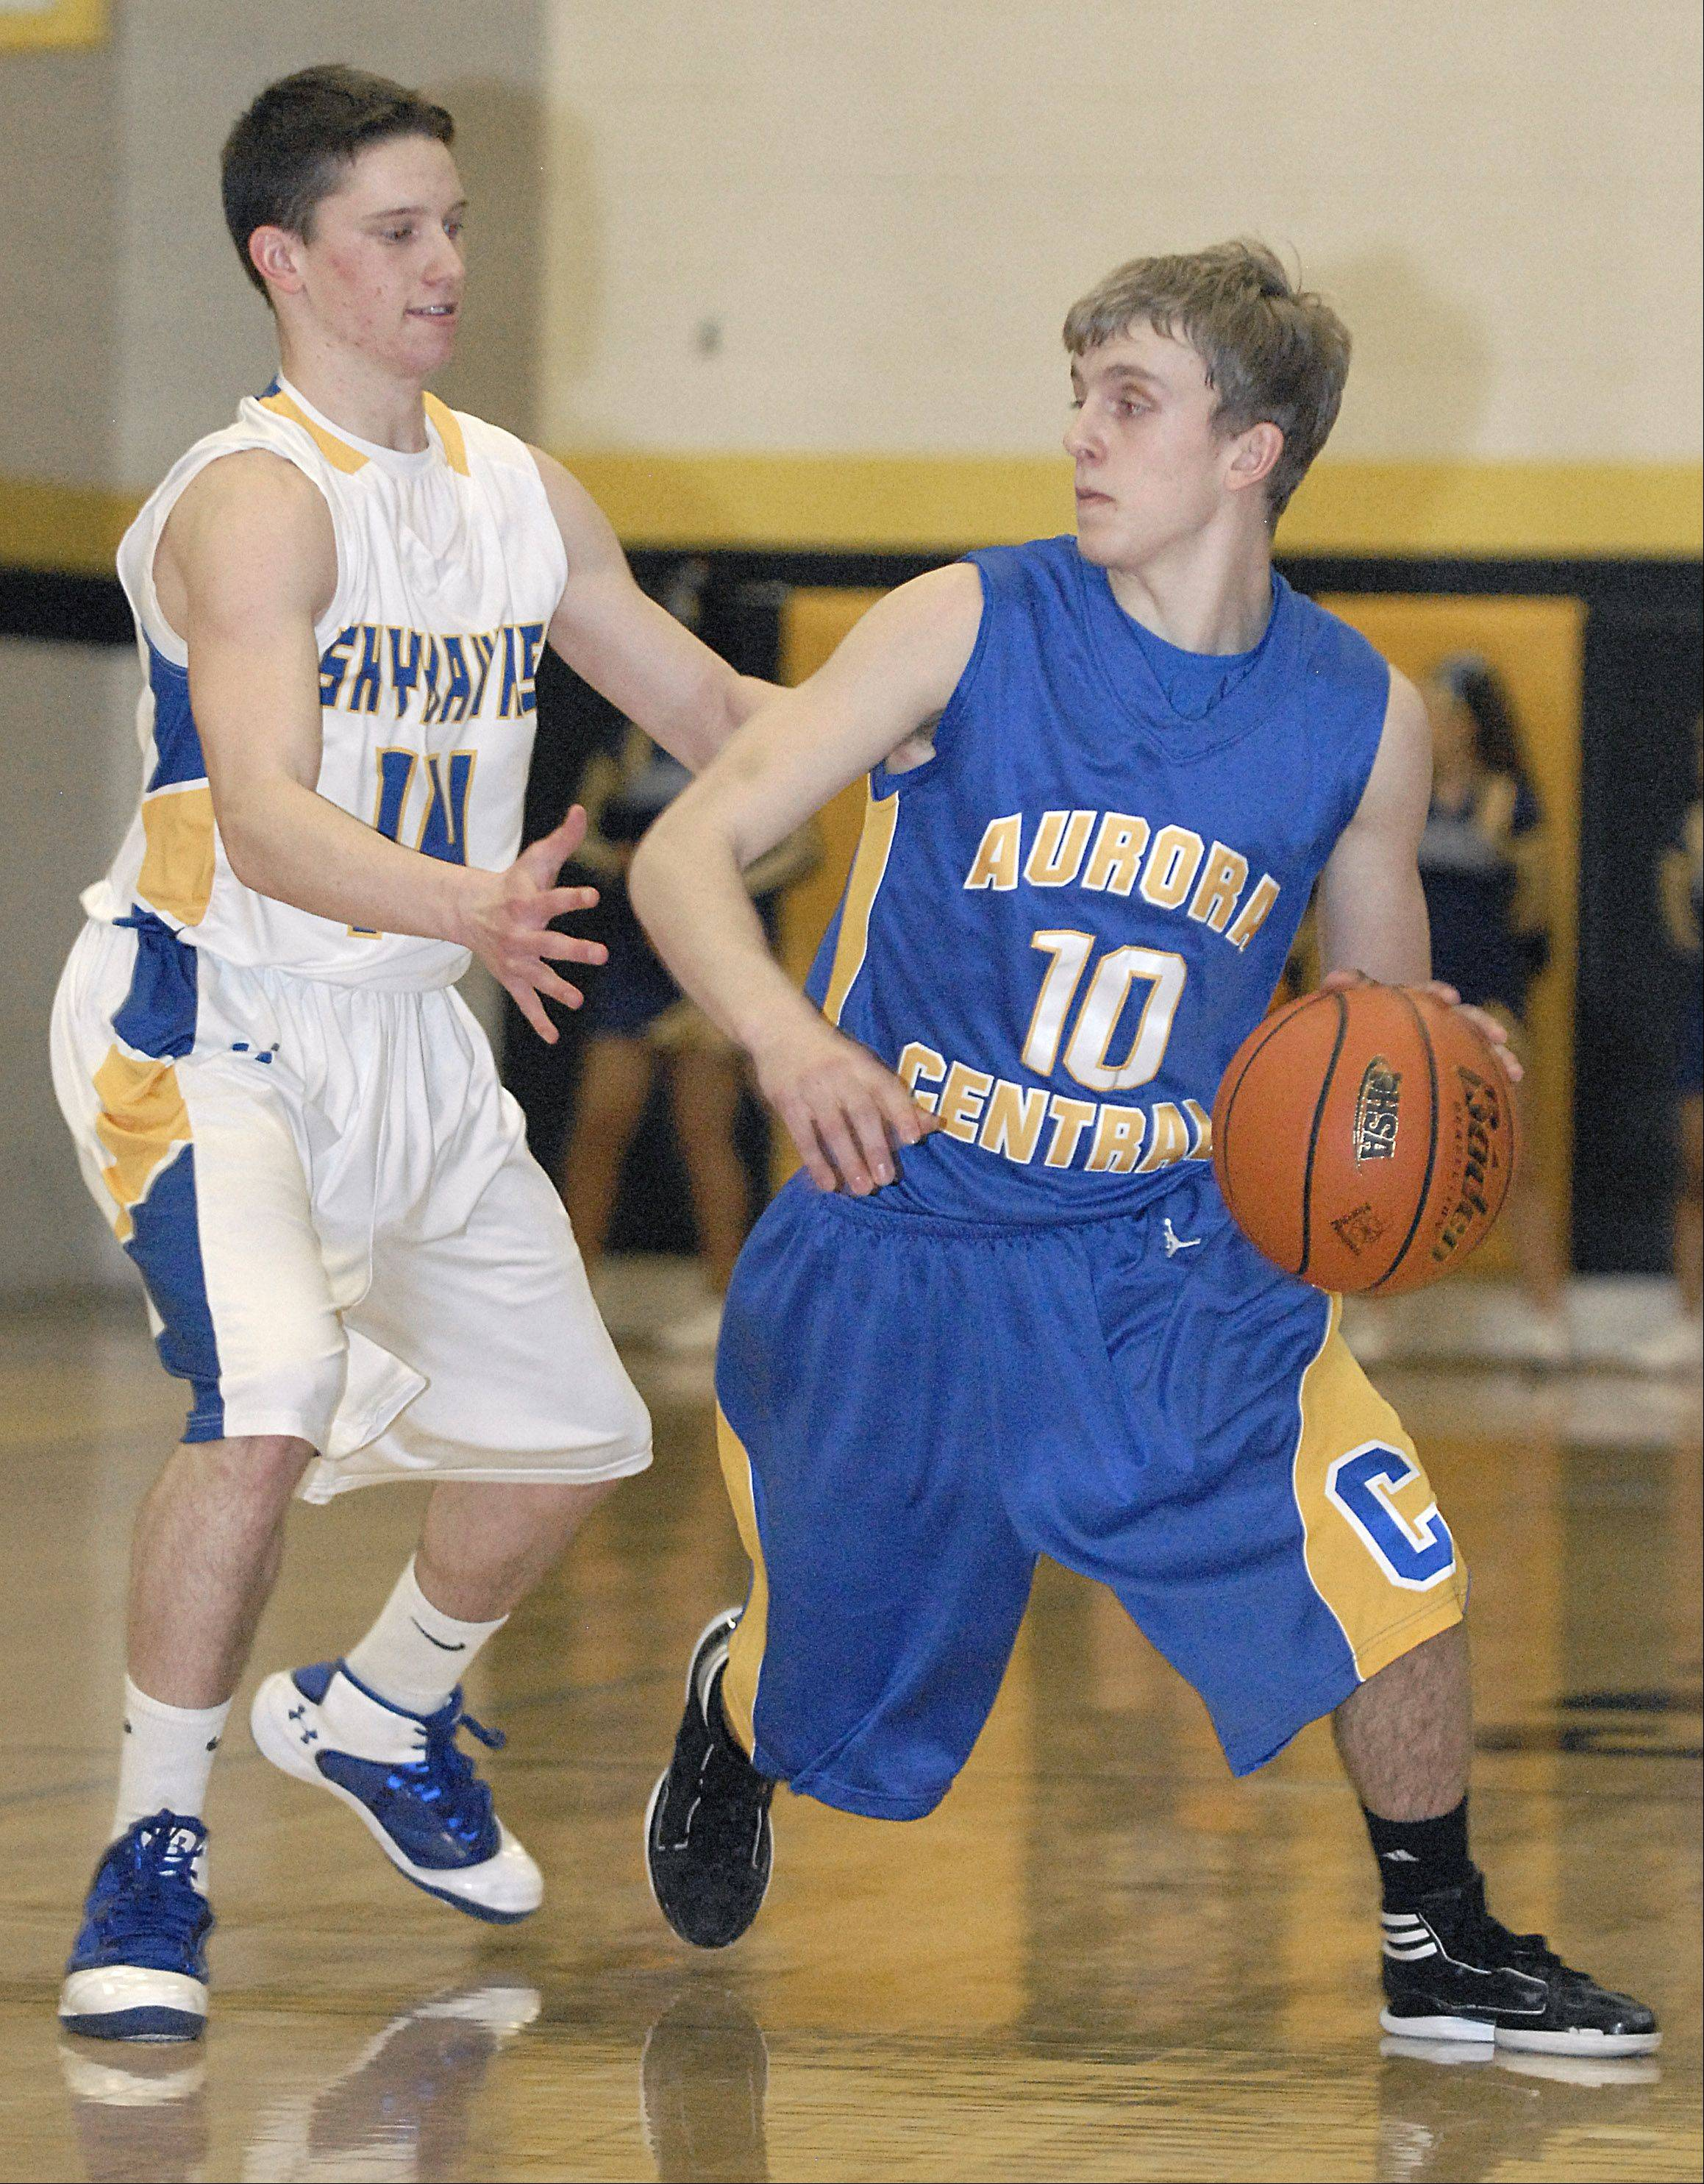 Aurora Central Catholic's Shawn Soris looks to pass around Johnsburg's Brett Toussaint in the first quarter of the sectional game on Wednesday, March 7.